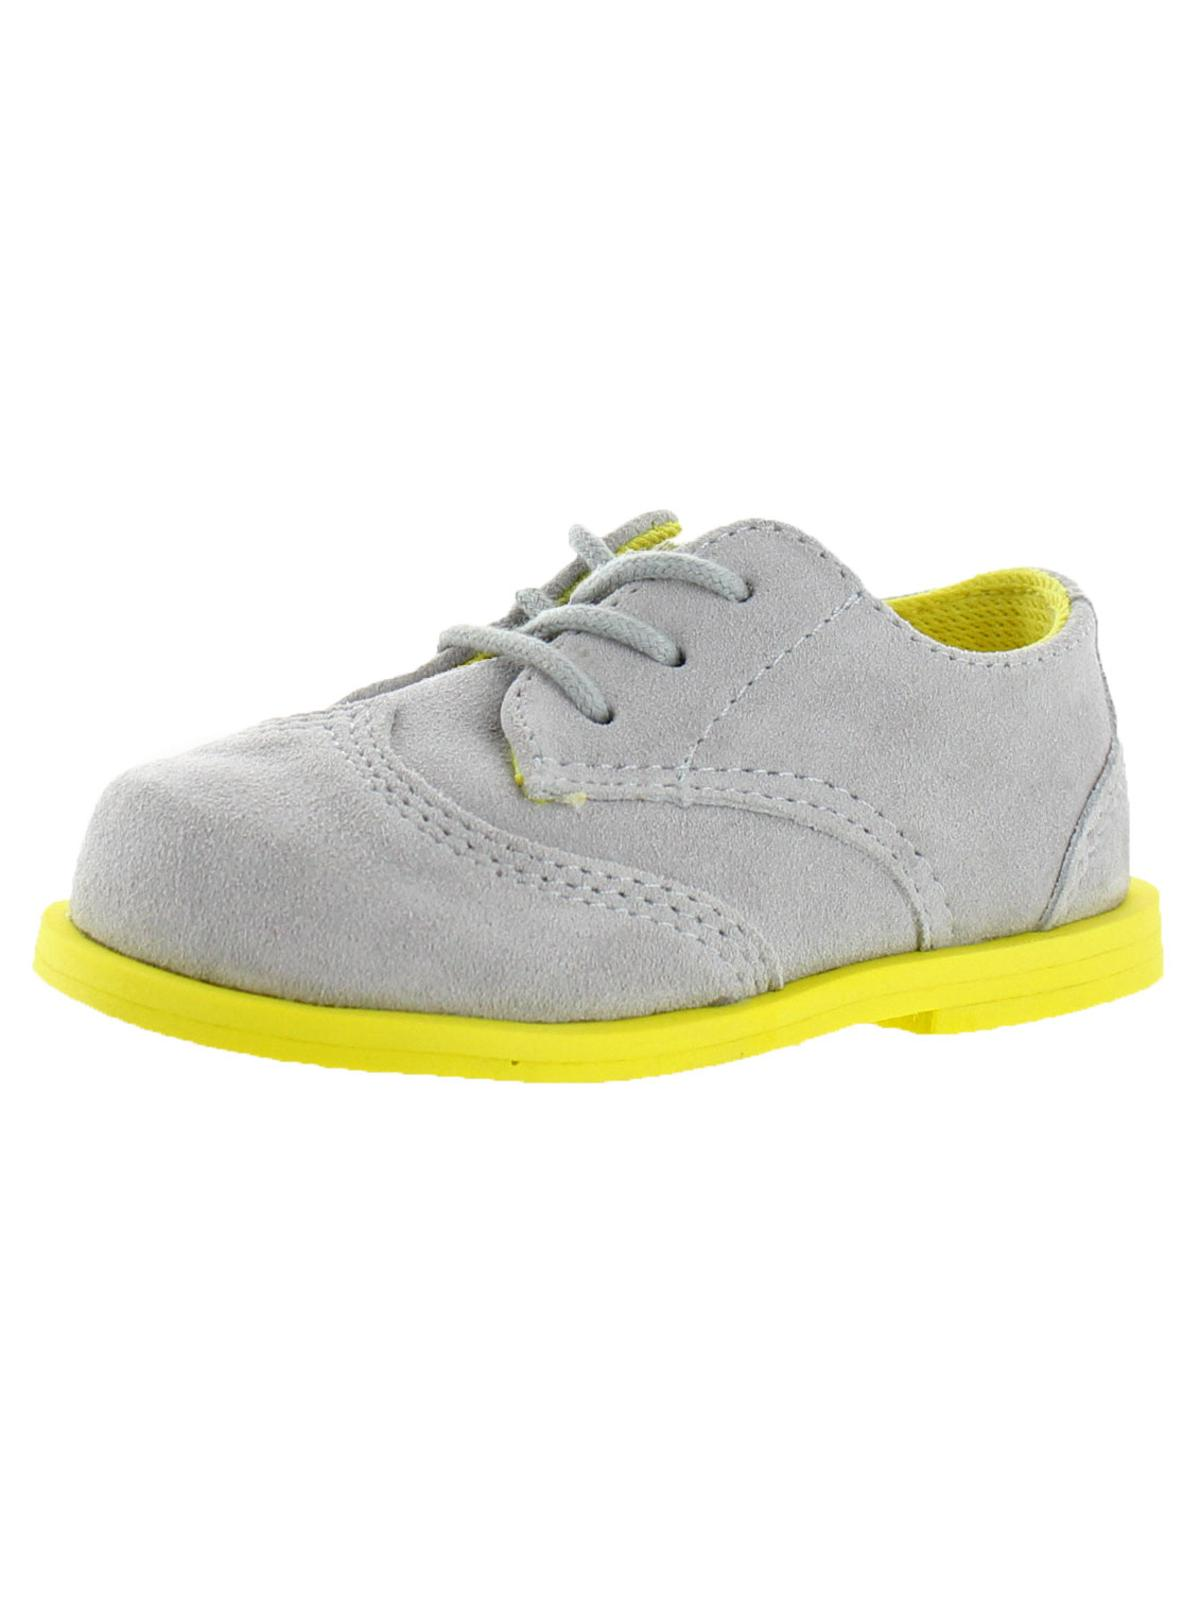 Cole Haan Boys Grand Oxford Wingtip Lightweight Oxfords